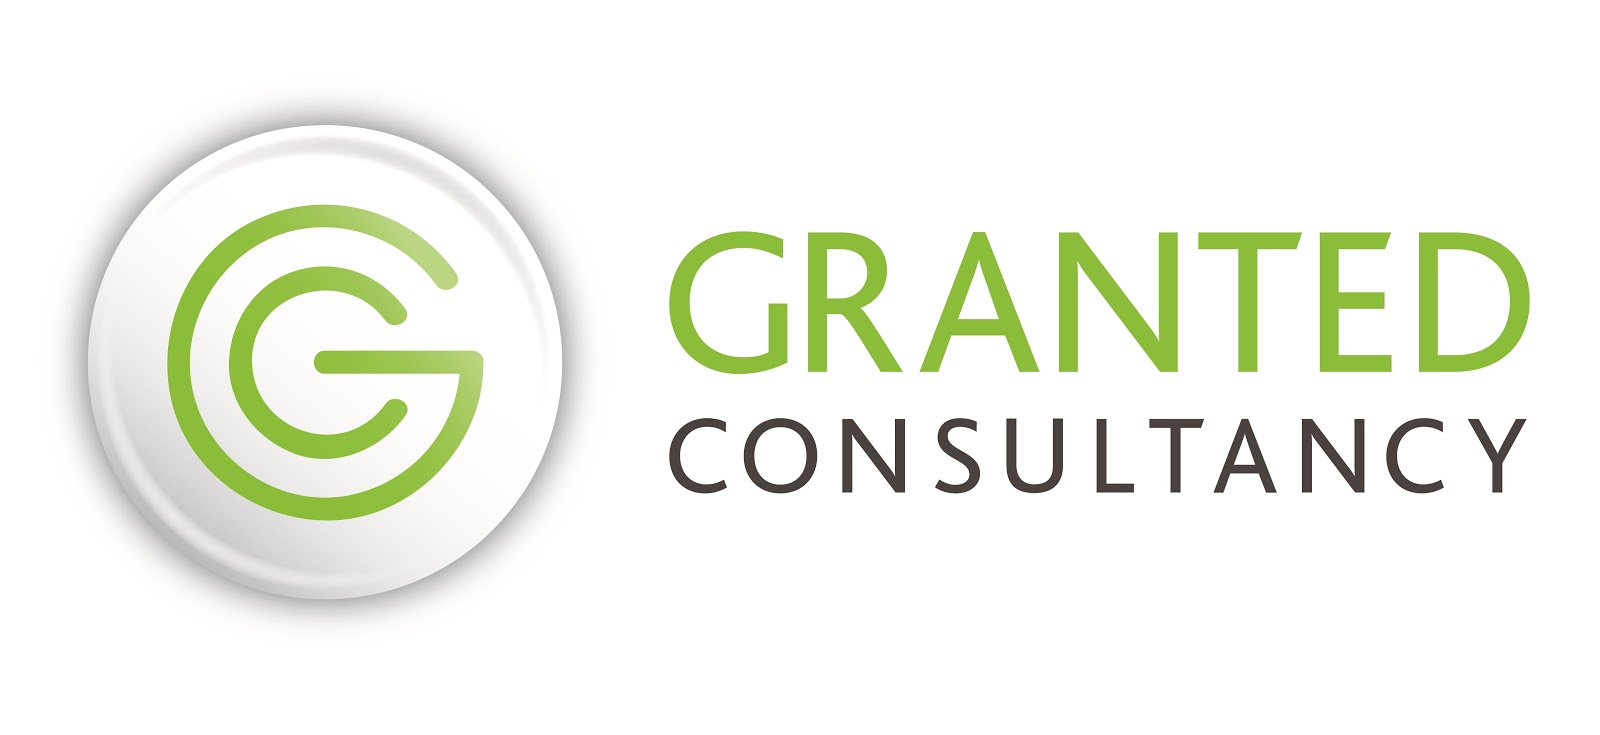 Granted Consultancy Ltd.